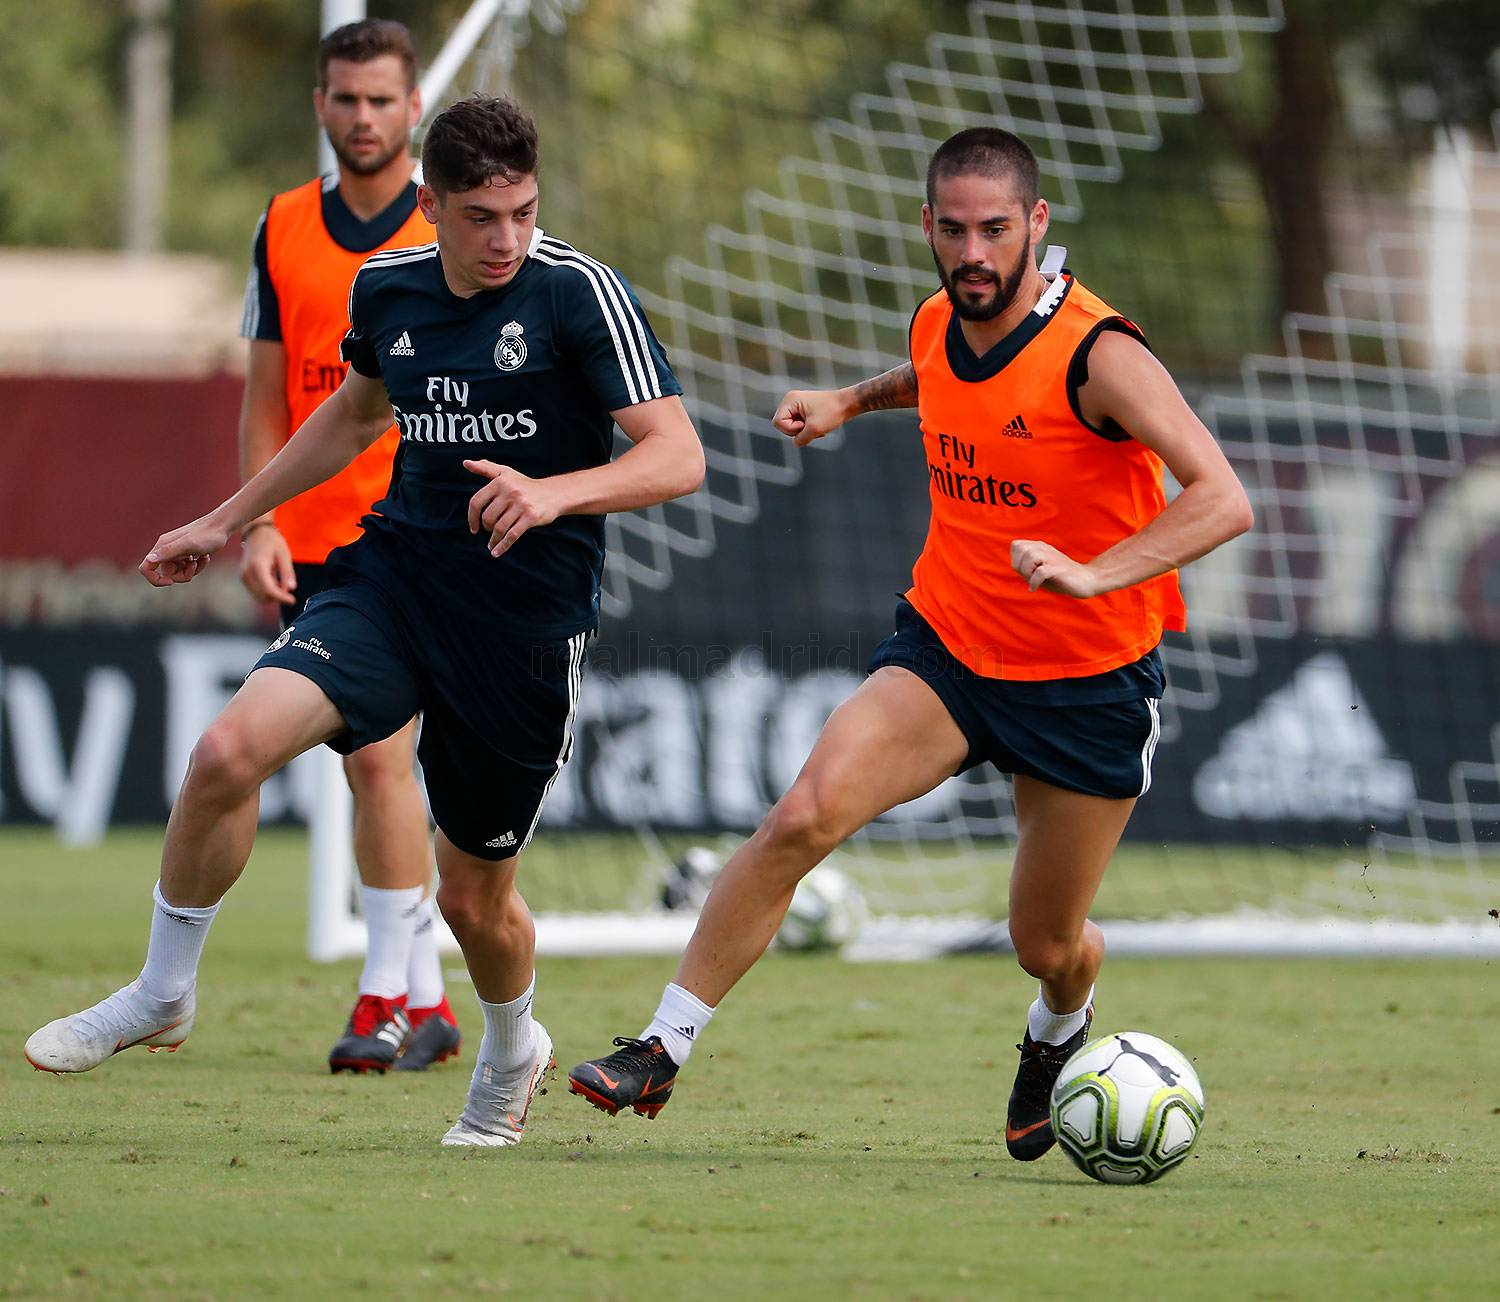 Real Madrid - Entrenamiento del Real Madrid en la Universidad de Barry - 03-08-2018